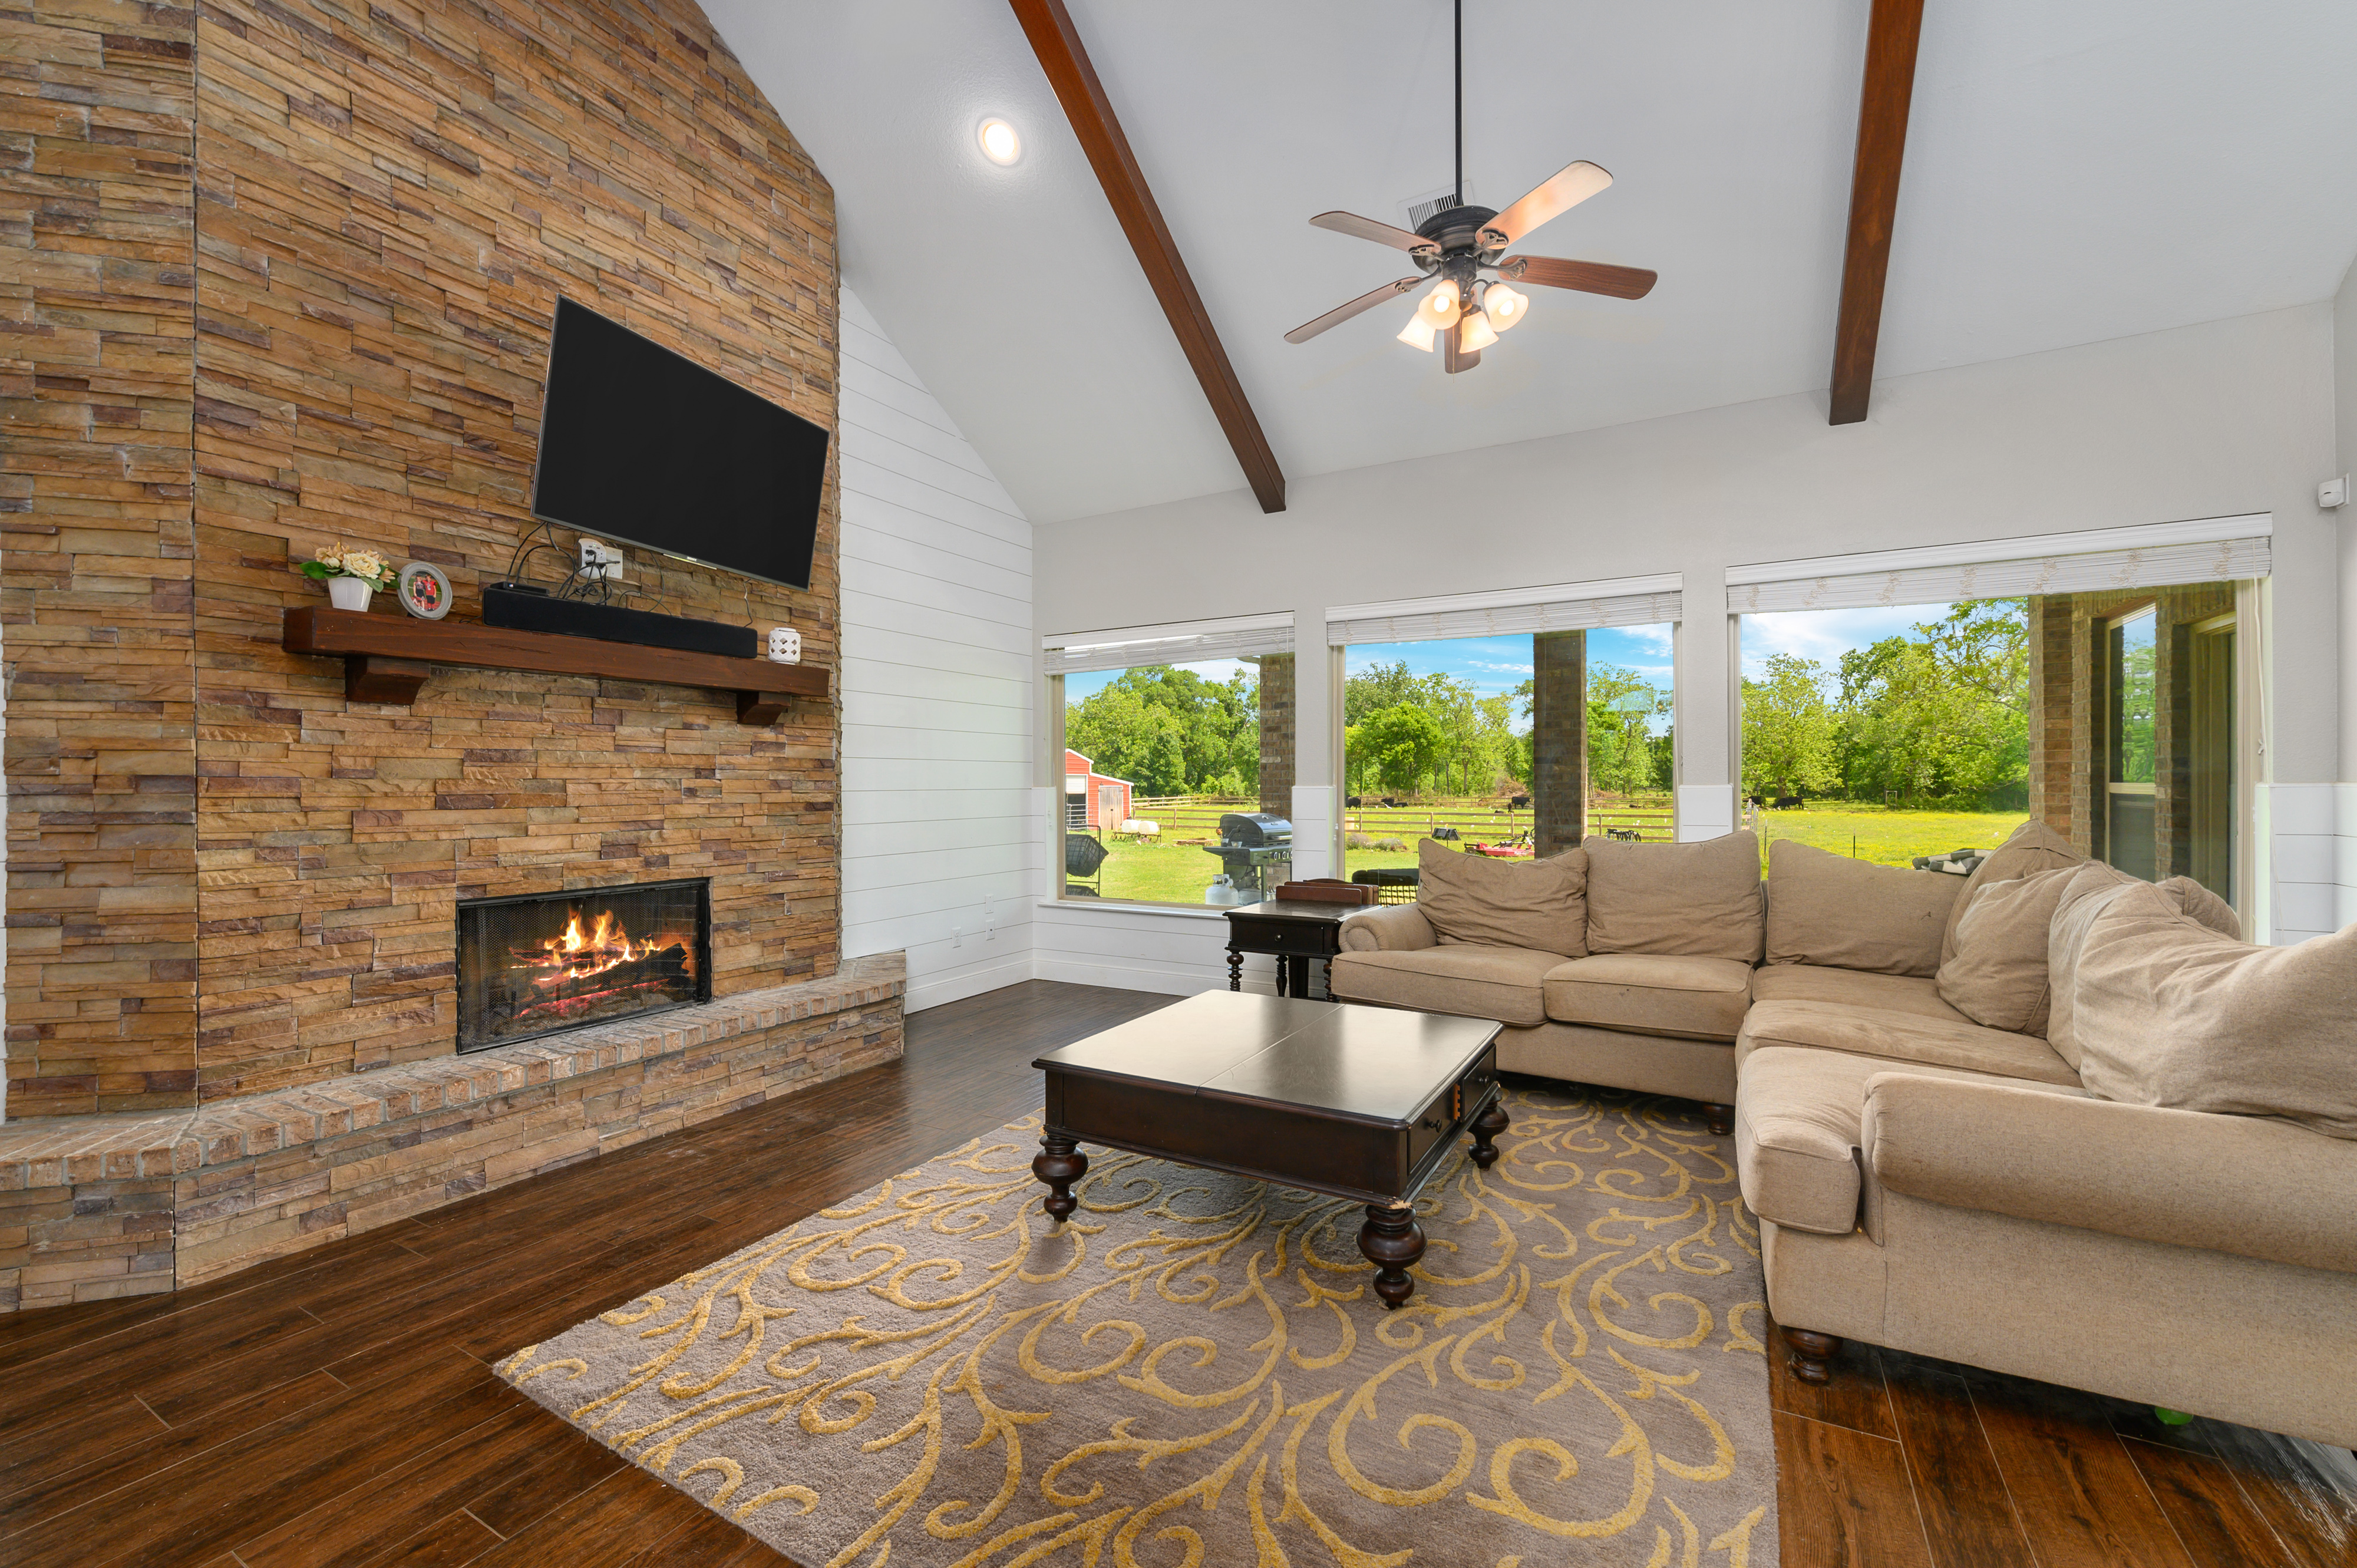 Custom Country Home with Acreage in Sealy - Image 19 of 46